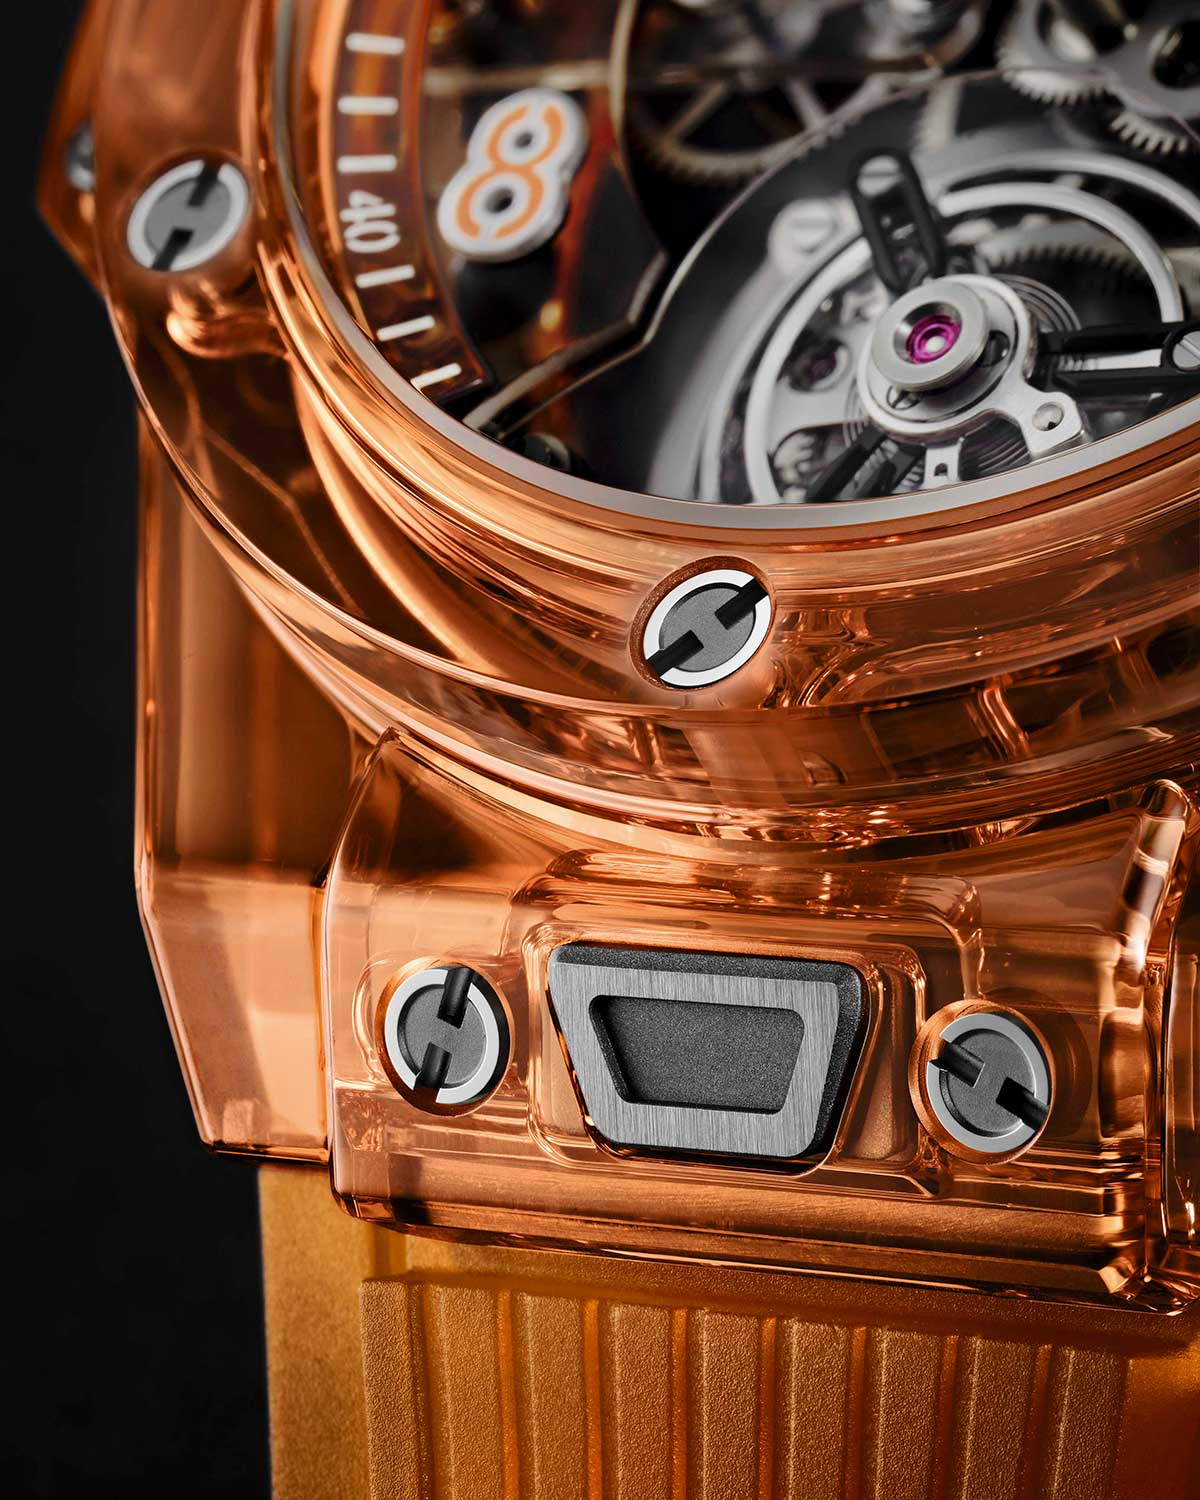 Detalle del sistema de intercambio de correas del Hublot Big Bang Tourbillon Automatic Orange Sapphire